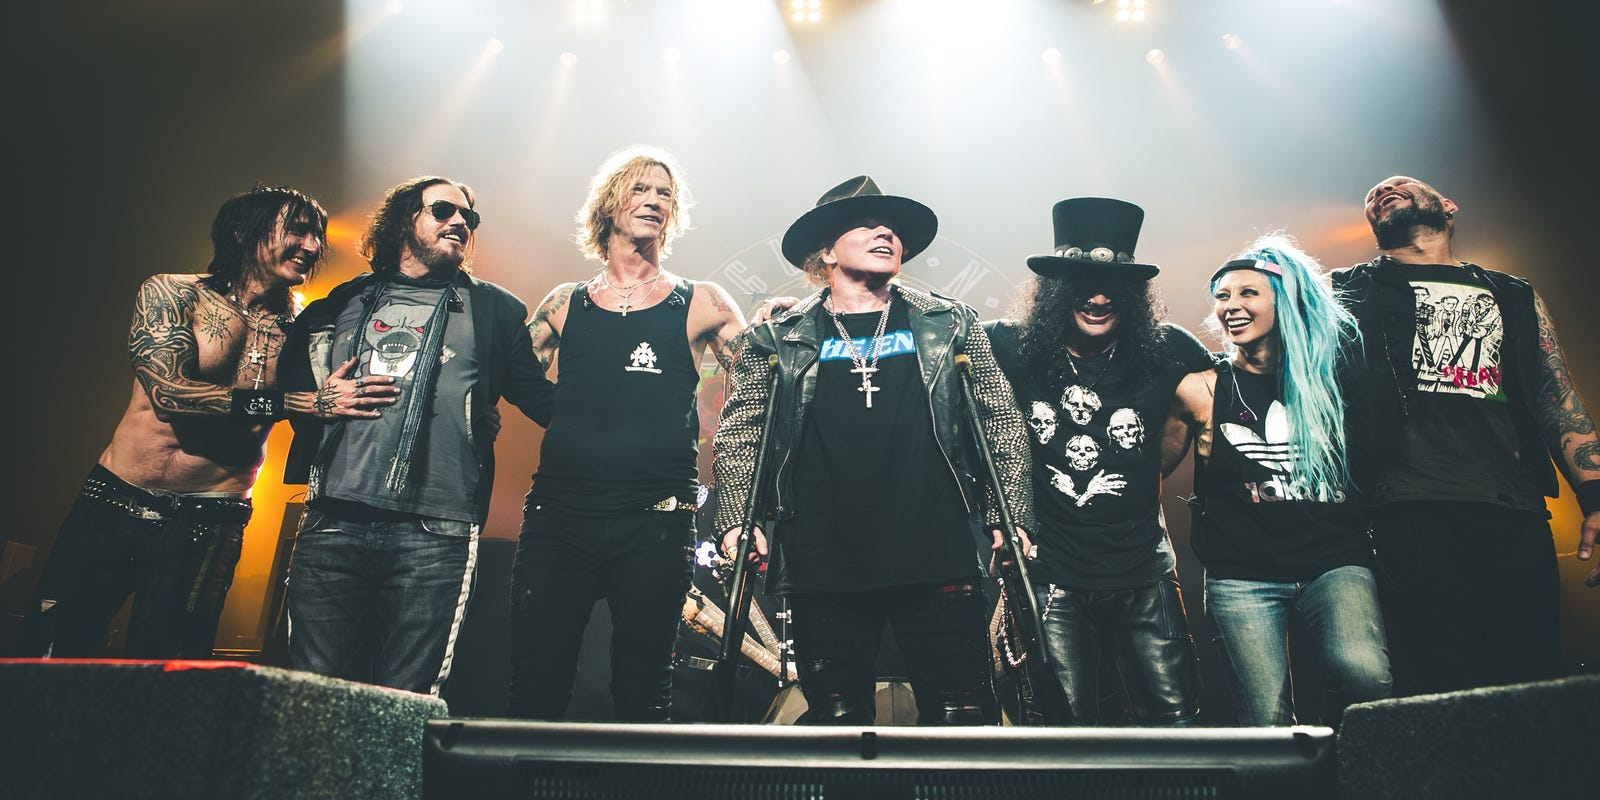 Guns N' Roses tour with Slash and Duff McKagan to play Phoenix as work continues on new LP